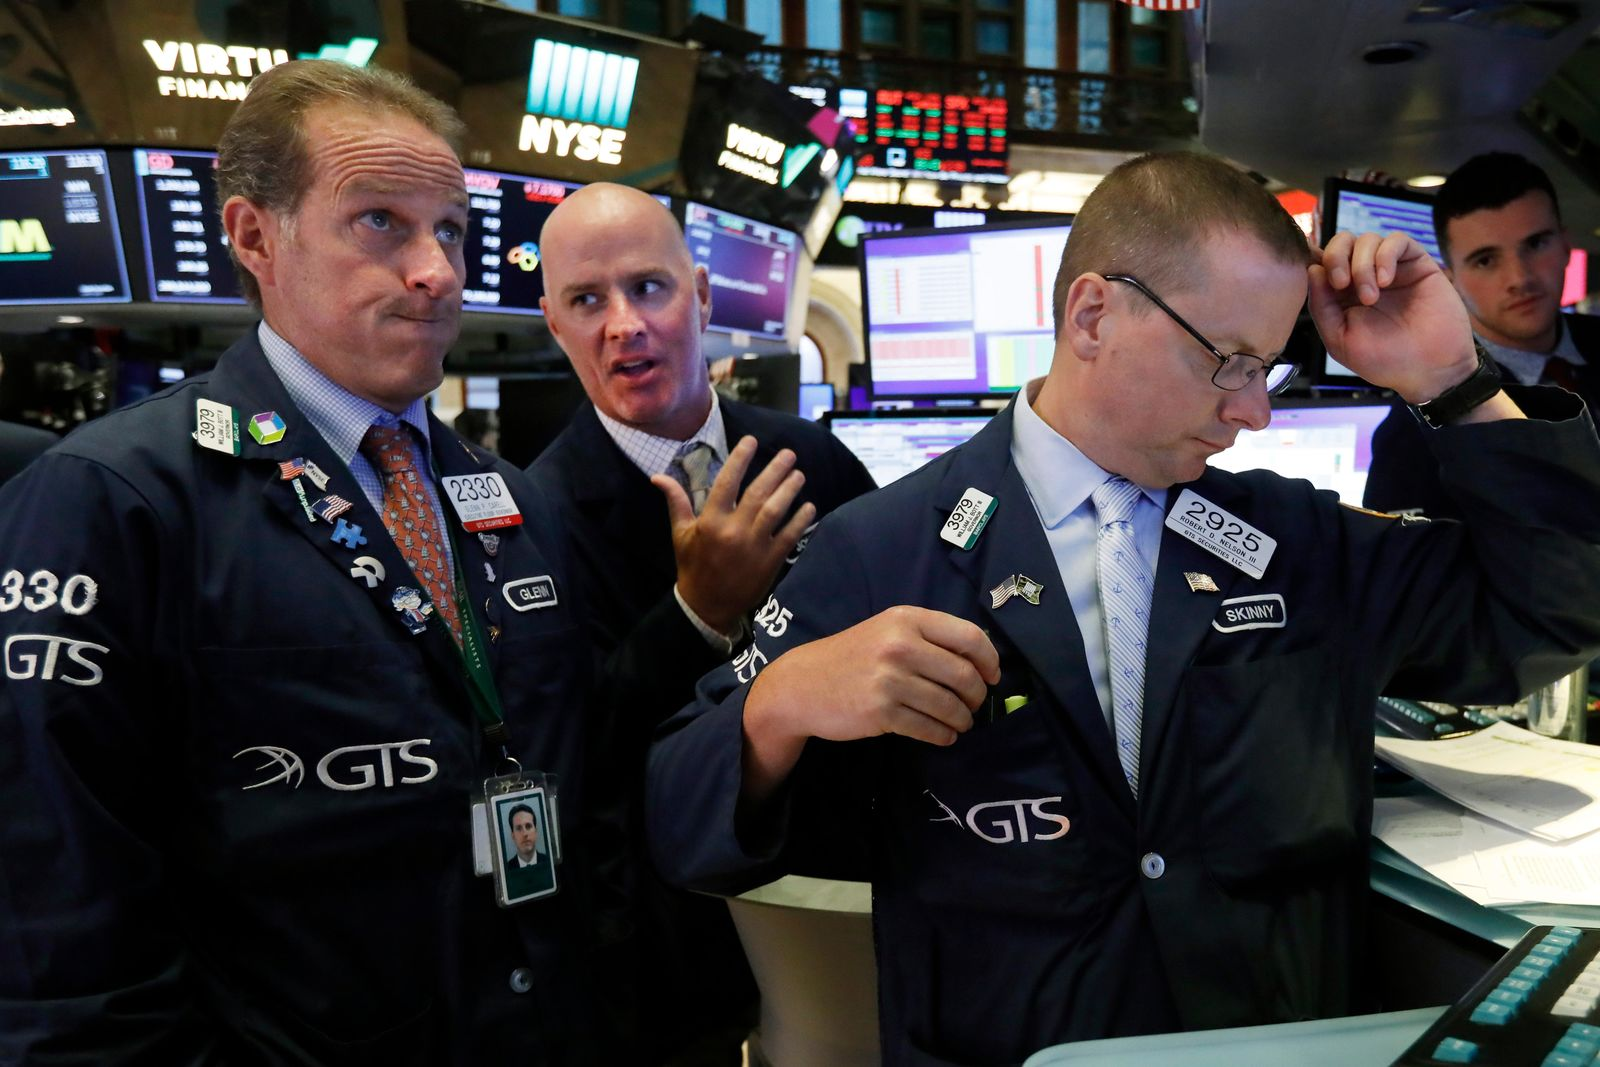 Specialists Glenn Carell, left, John 'Hara, center, and Robert Nelson, gather at a trading post on the floor of the New York Stock Exchange, Wednesday, Aug. 14, 2019.{ } (AP Photo/Richard Drew)